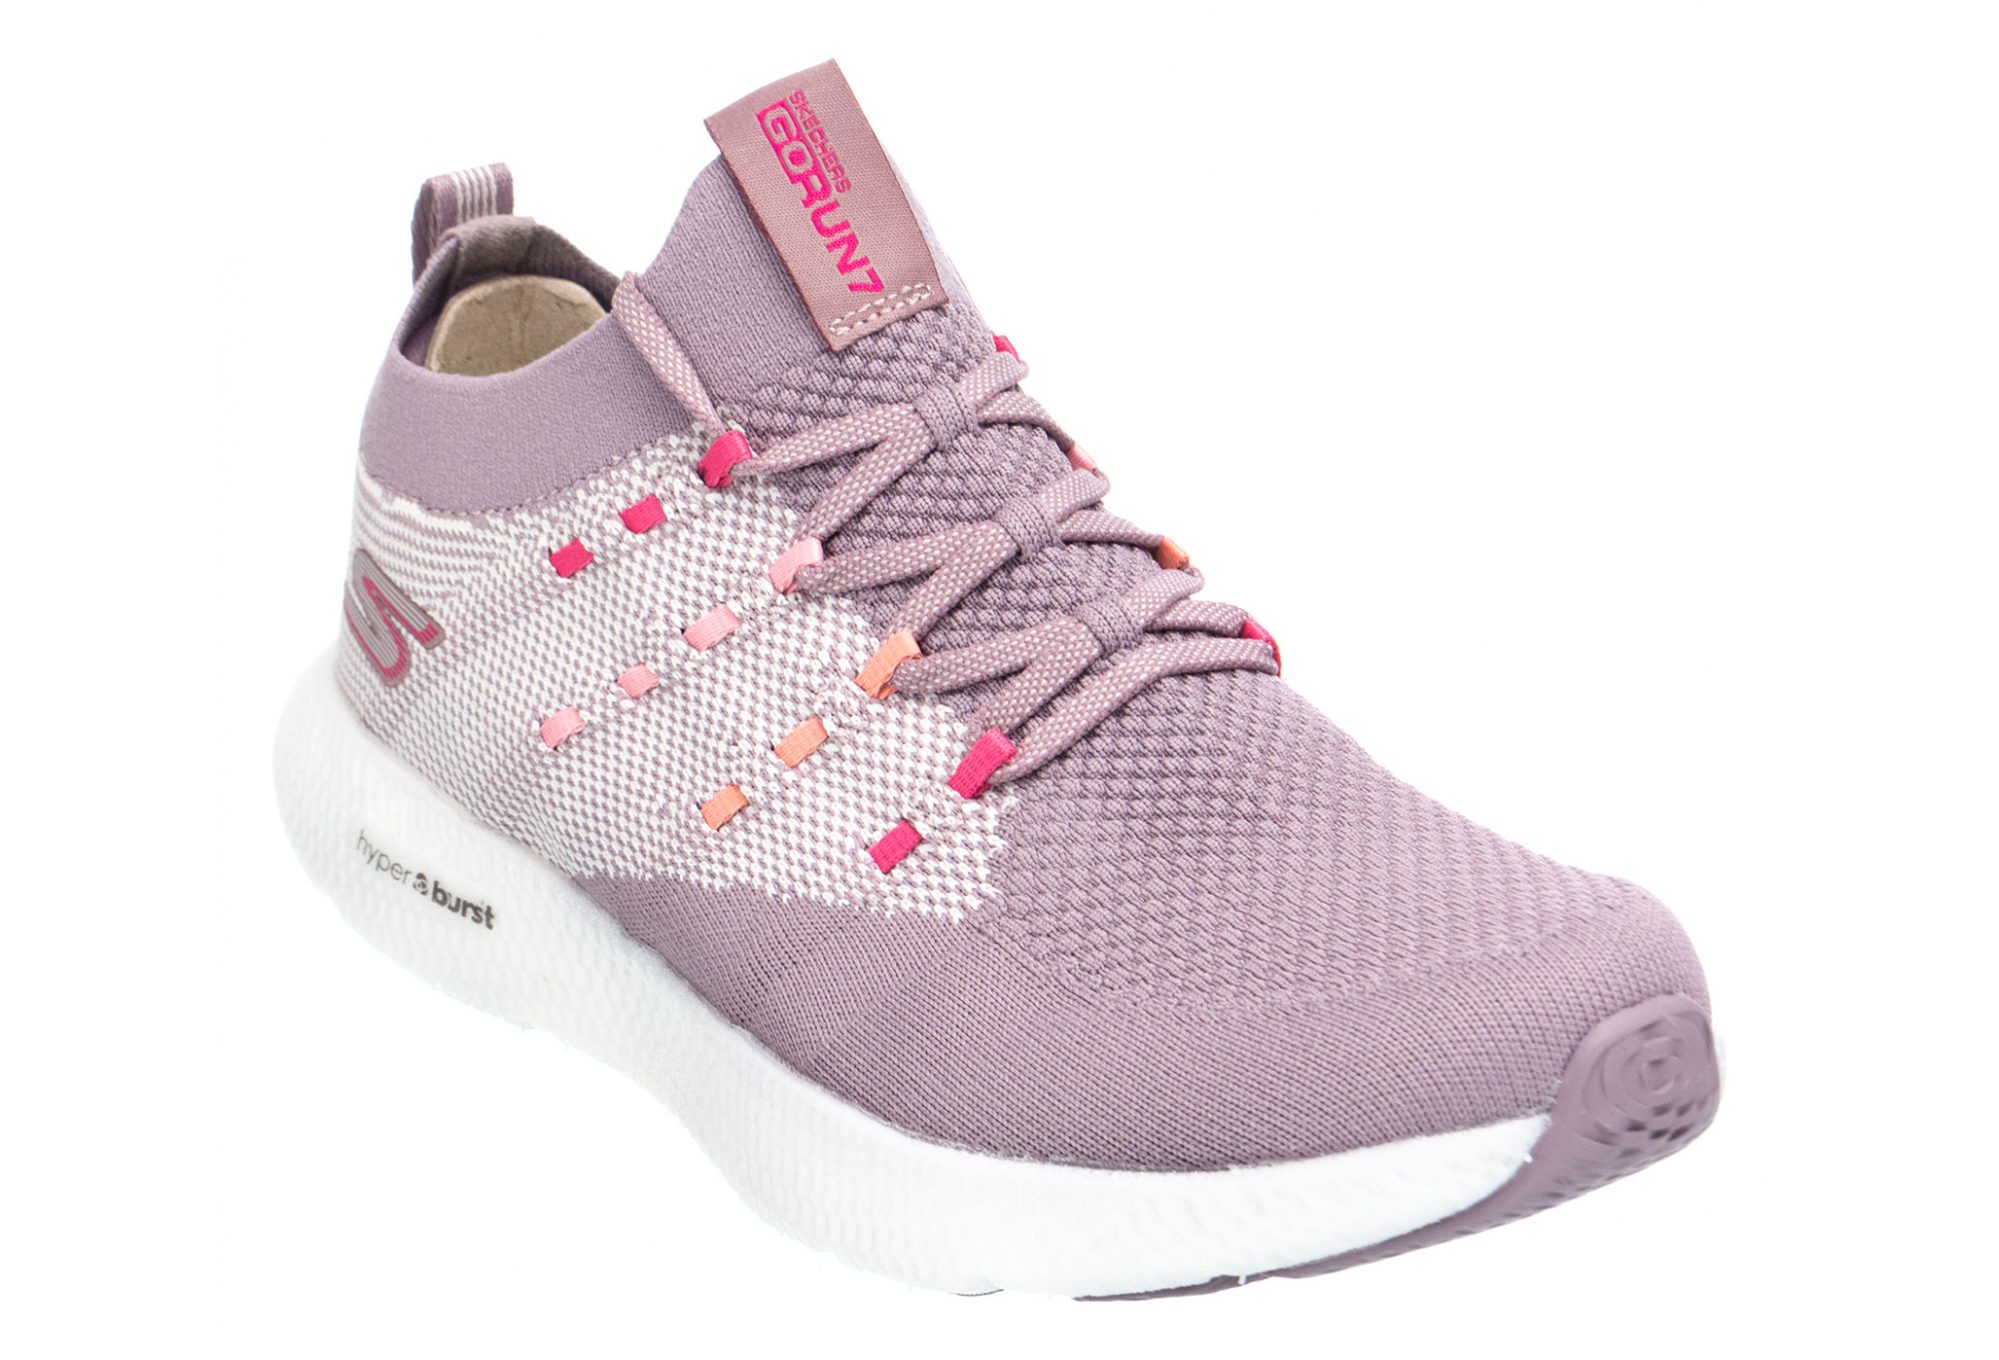 Skechers Go Run 7 Women's Shoes Pink